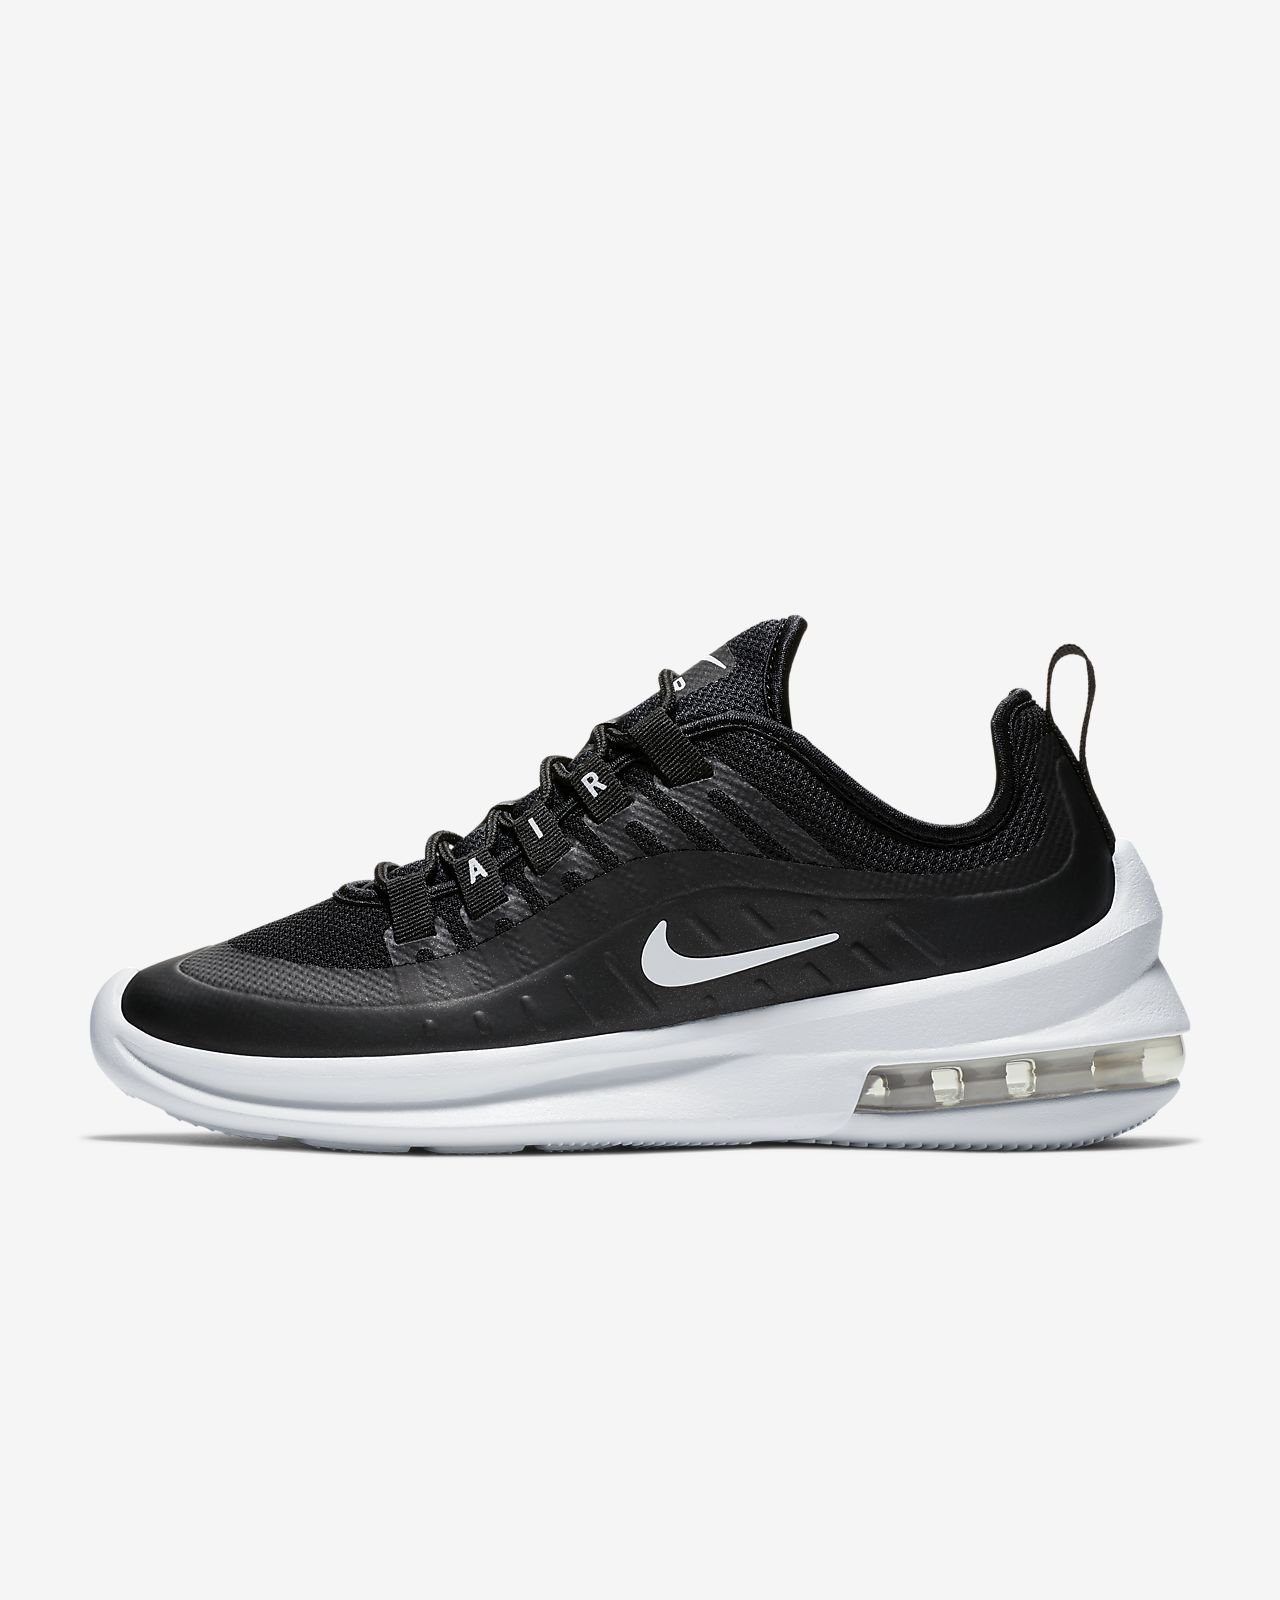 Nike Air Max Axis Women's Shoe